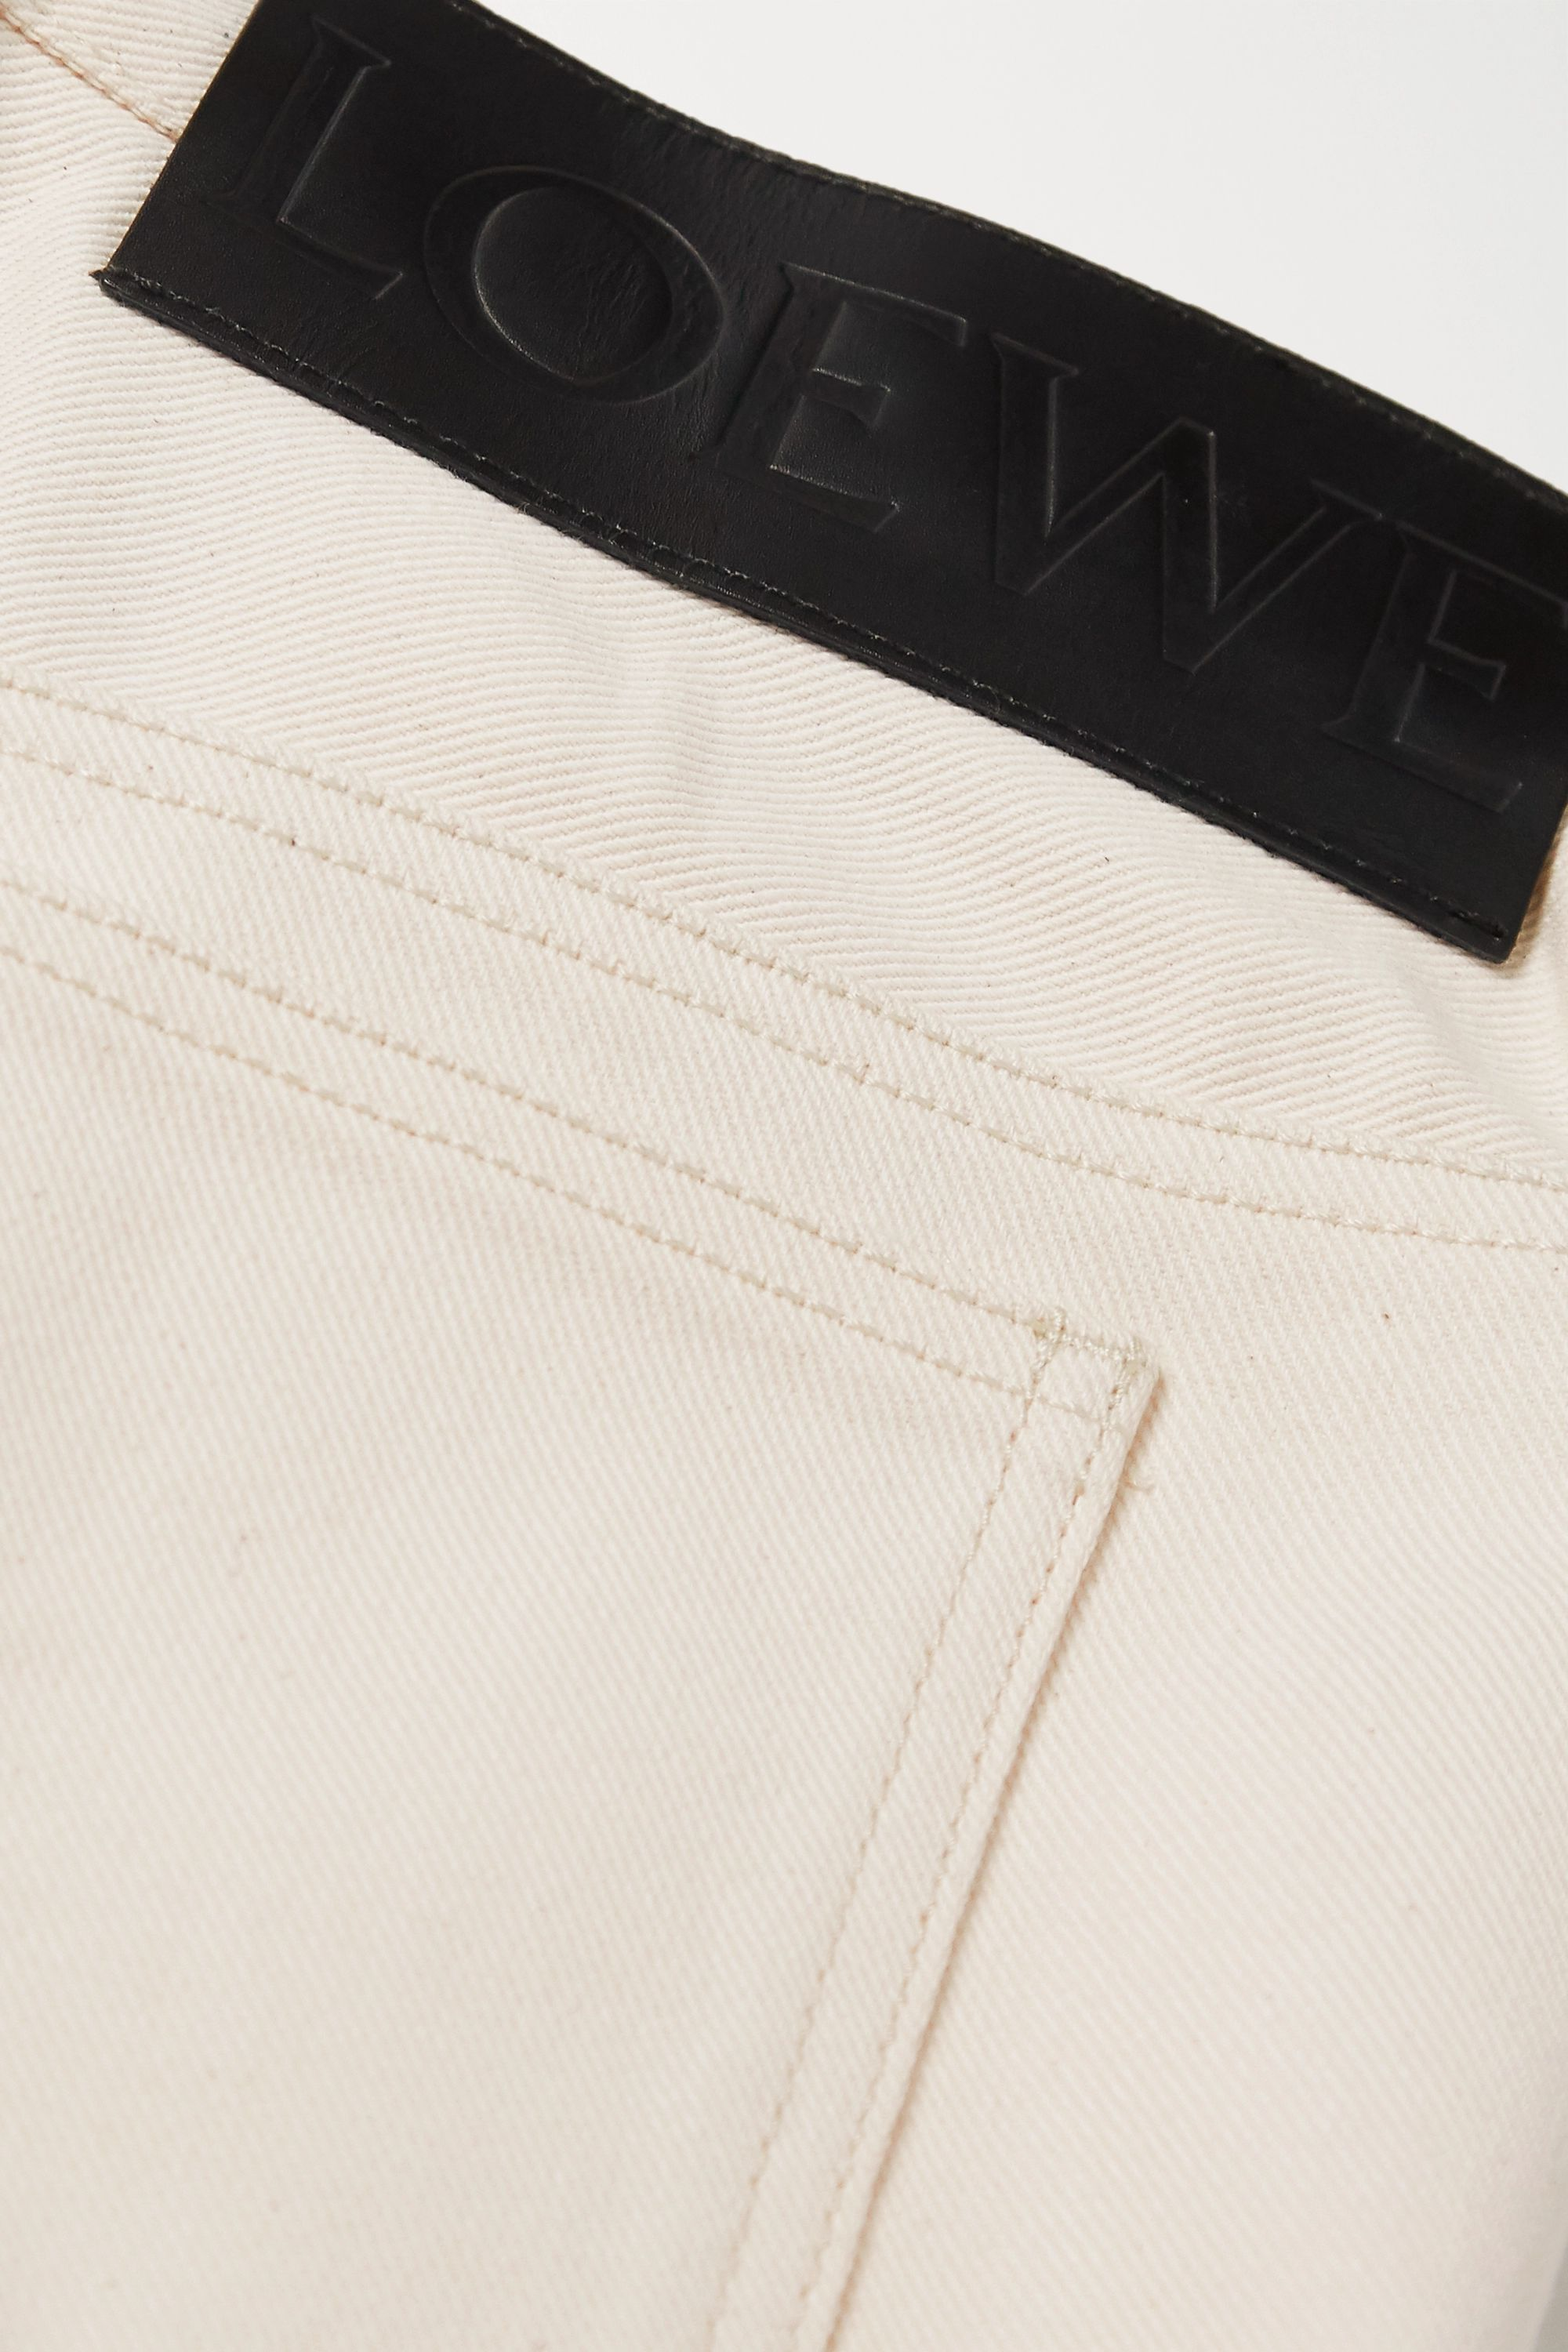 Loewe Cropped pleated high-rise jeans